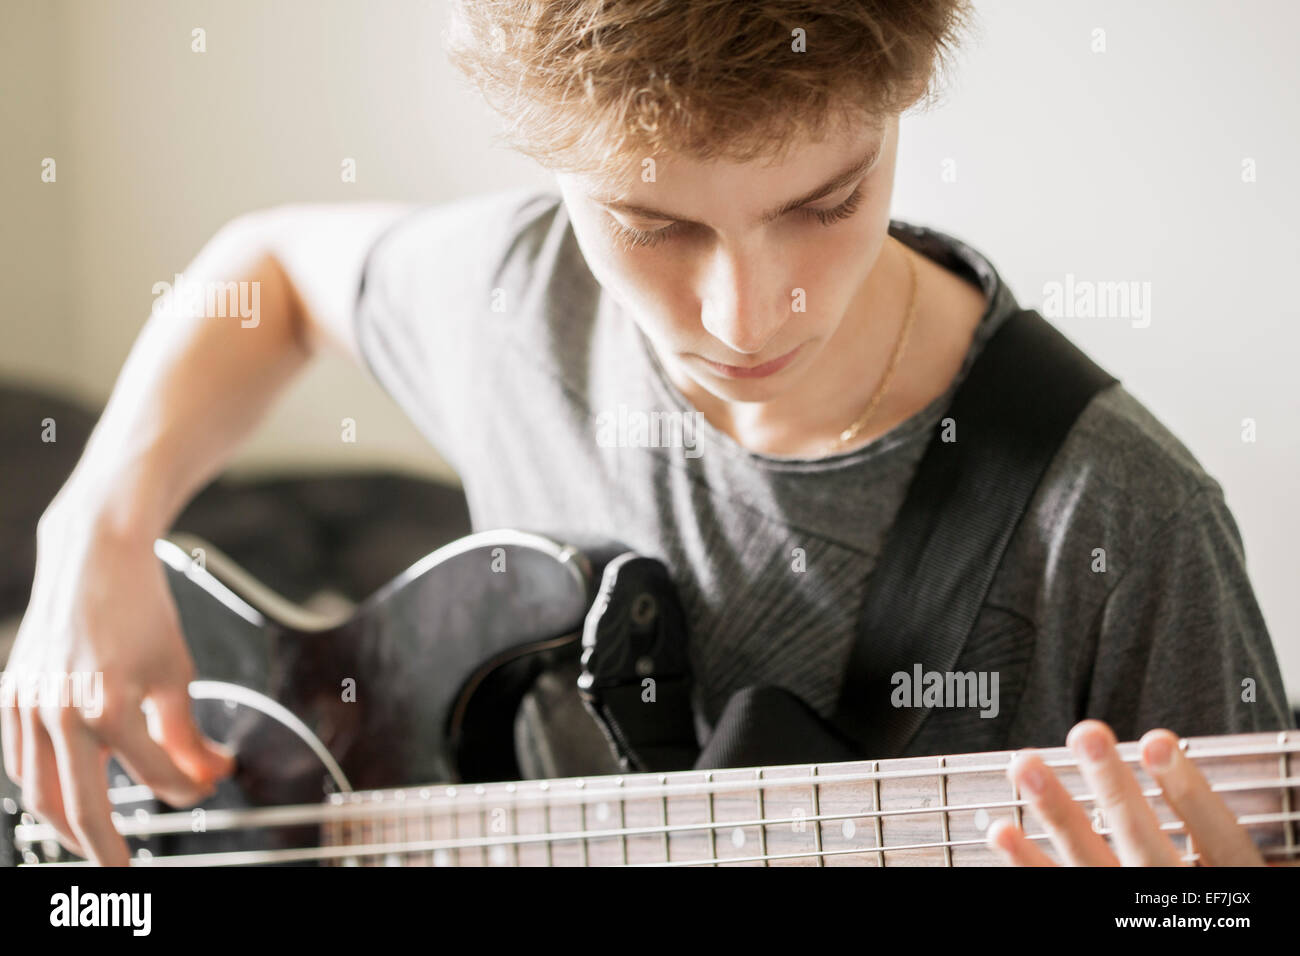 Teenager, Gitarre Stockfoto